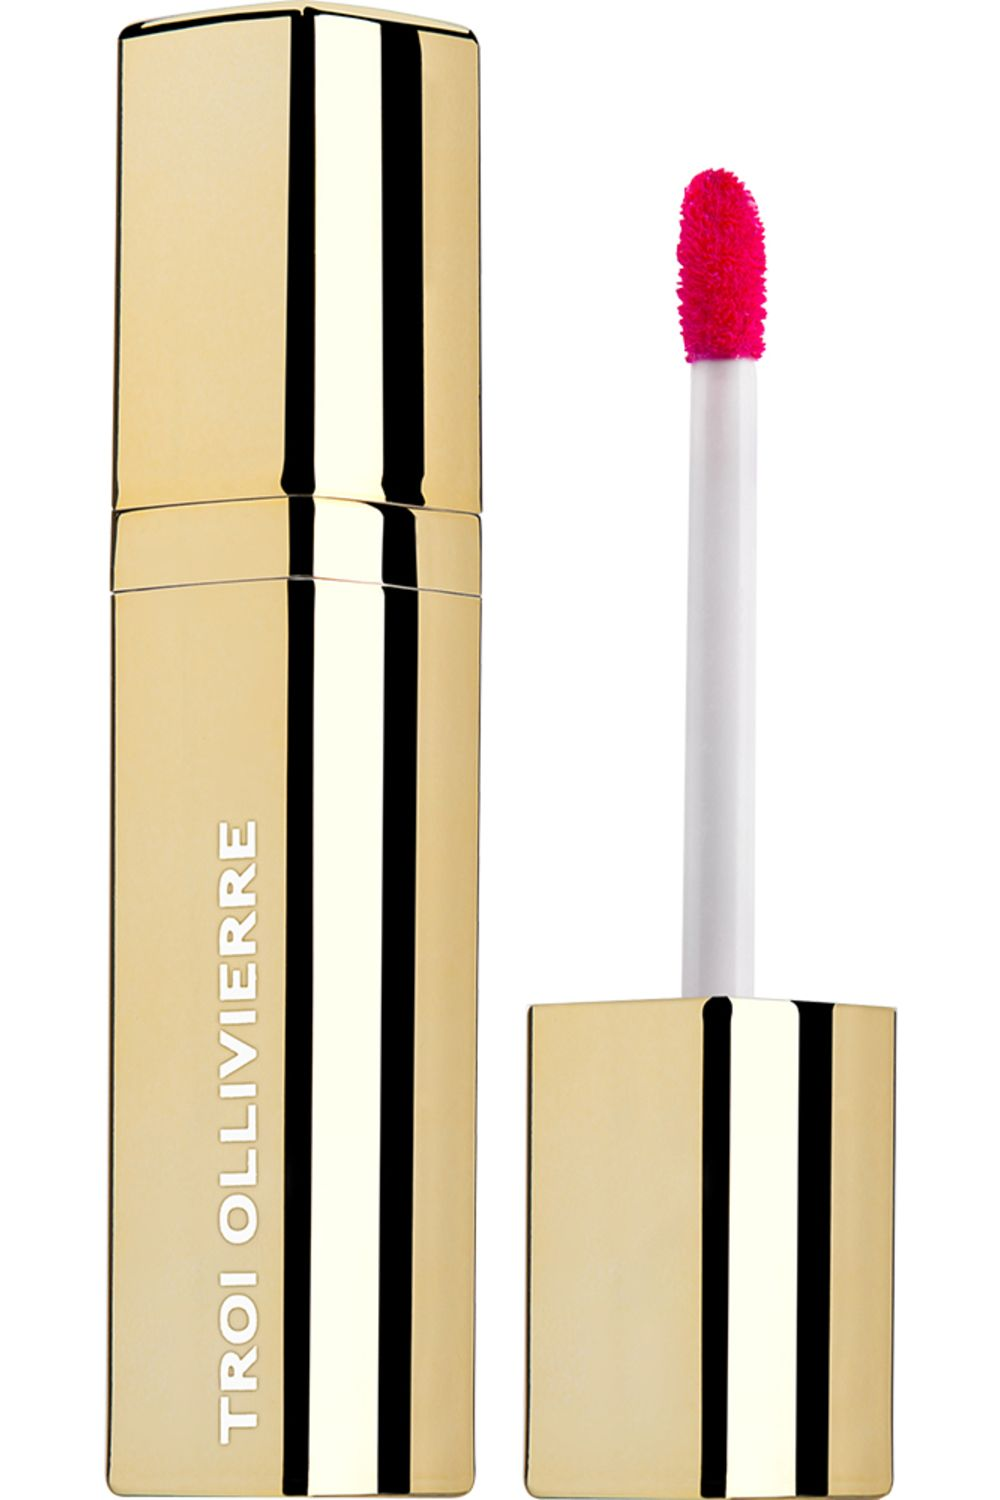 Blissim : Troi Ollivierre Beauty - Encres à lèvres Stain & Glow - Stain & Glow Lip Stain Harry